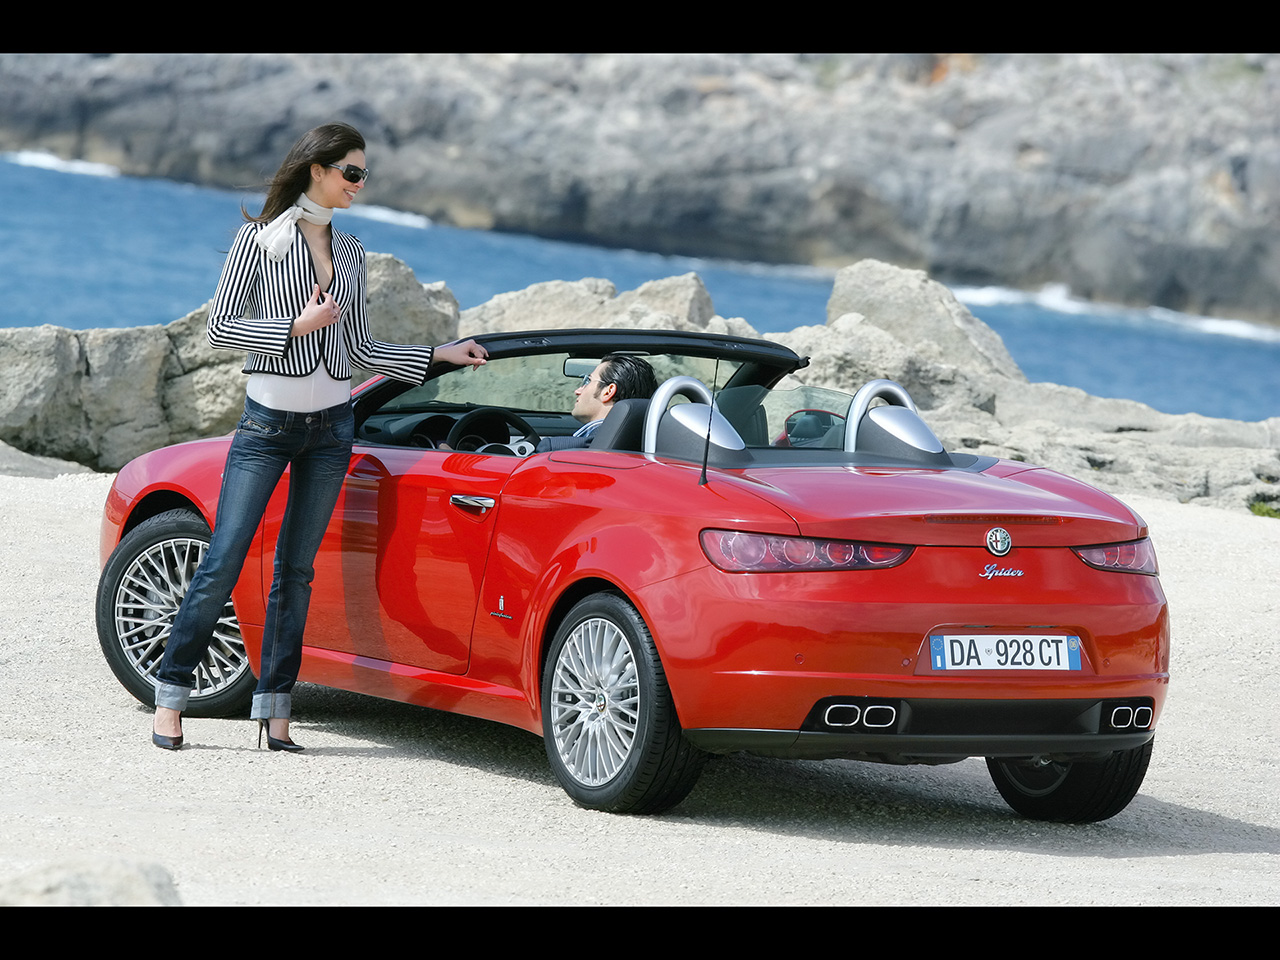 Alfa Romeo Spider girl High Resolution Image Wallpapers HD